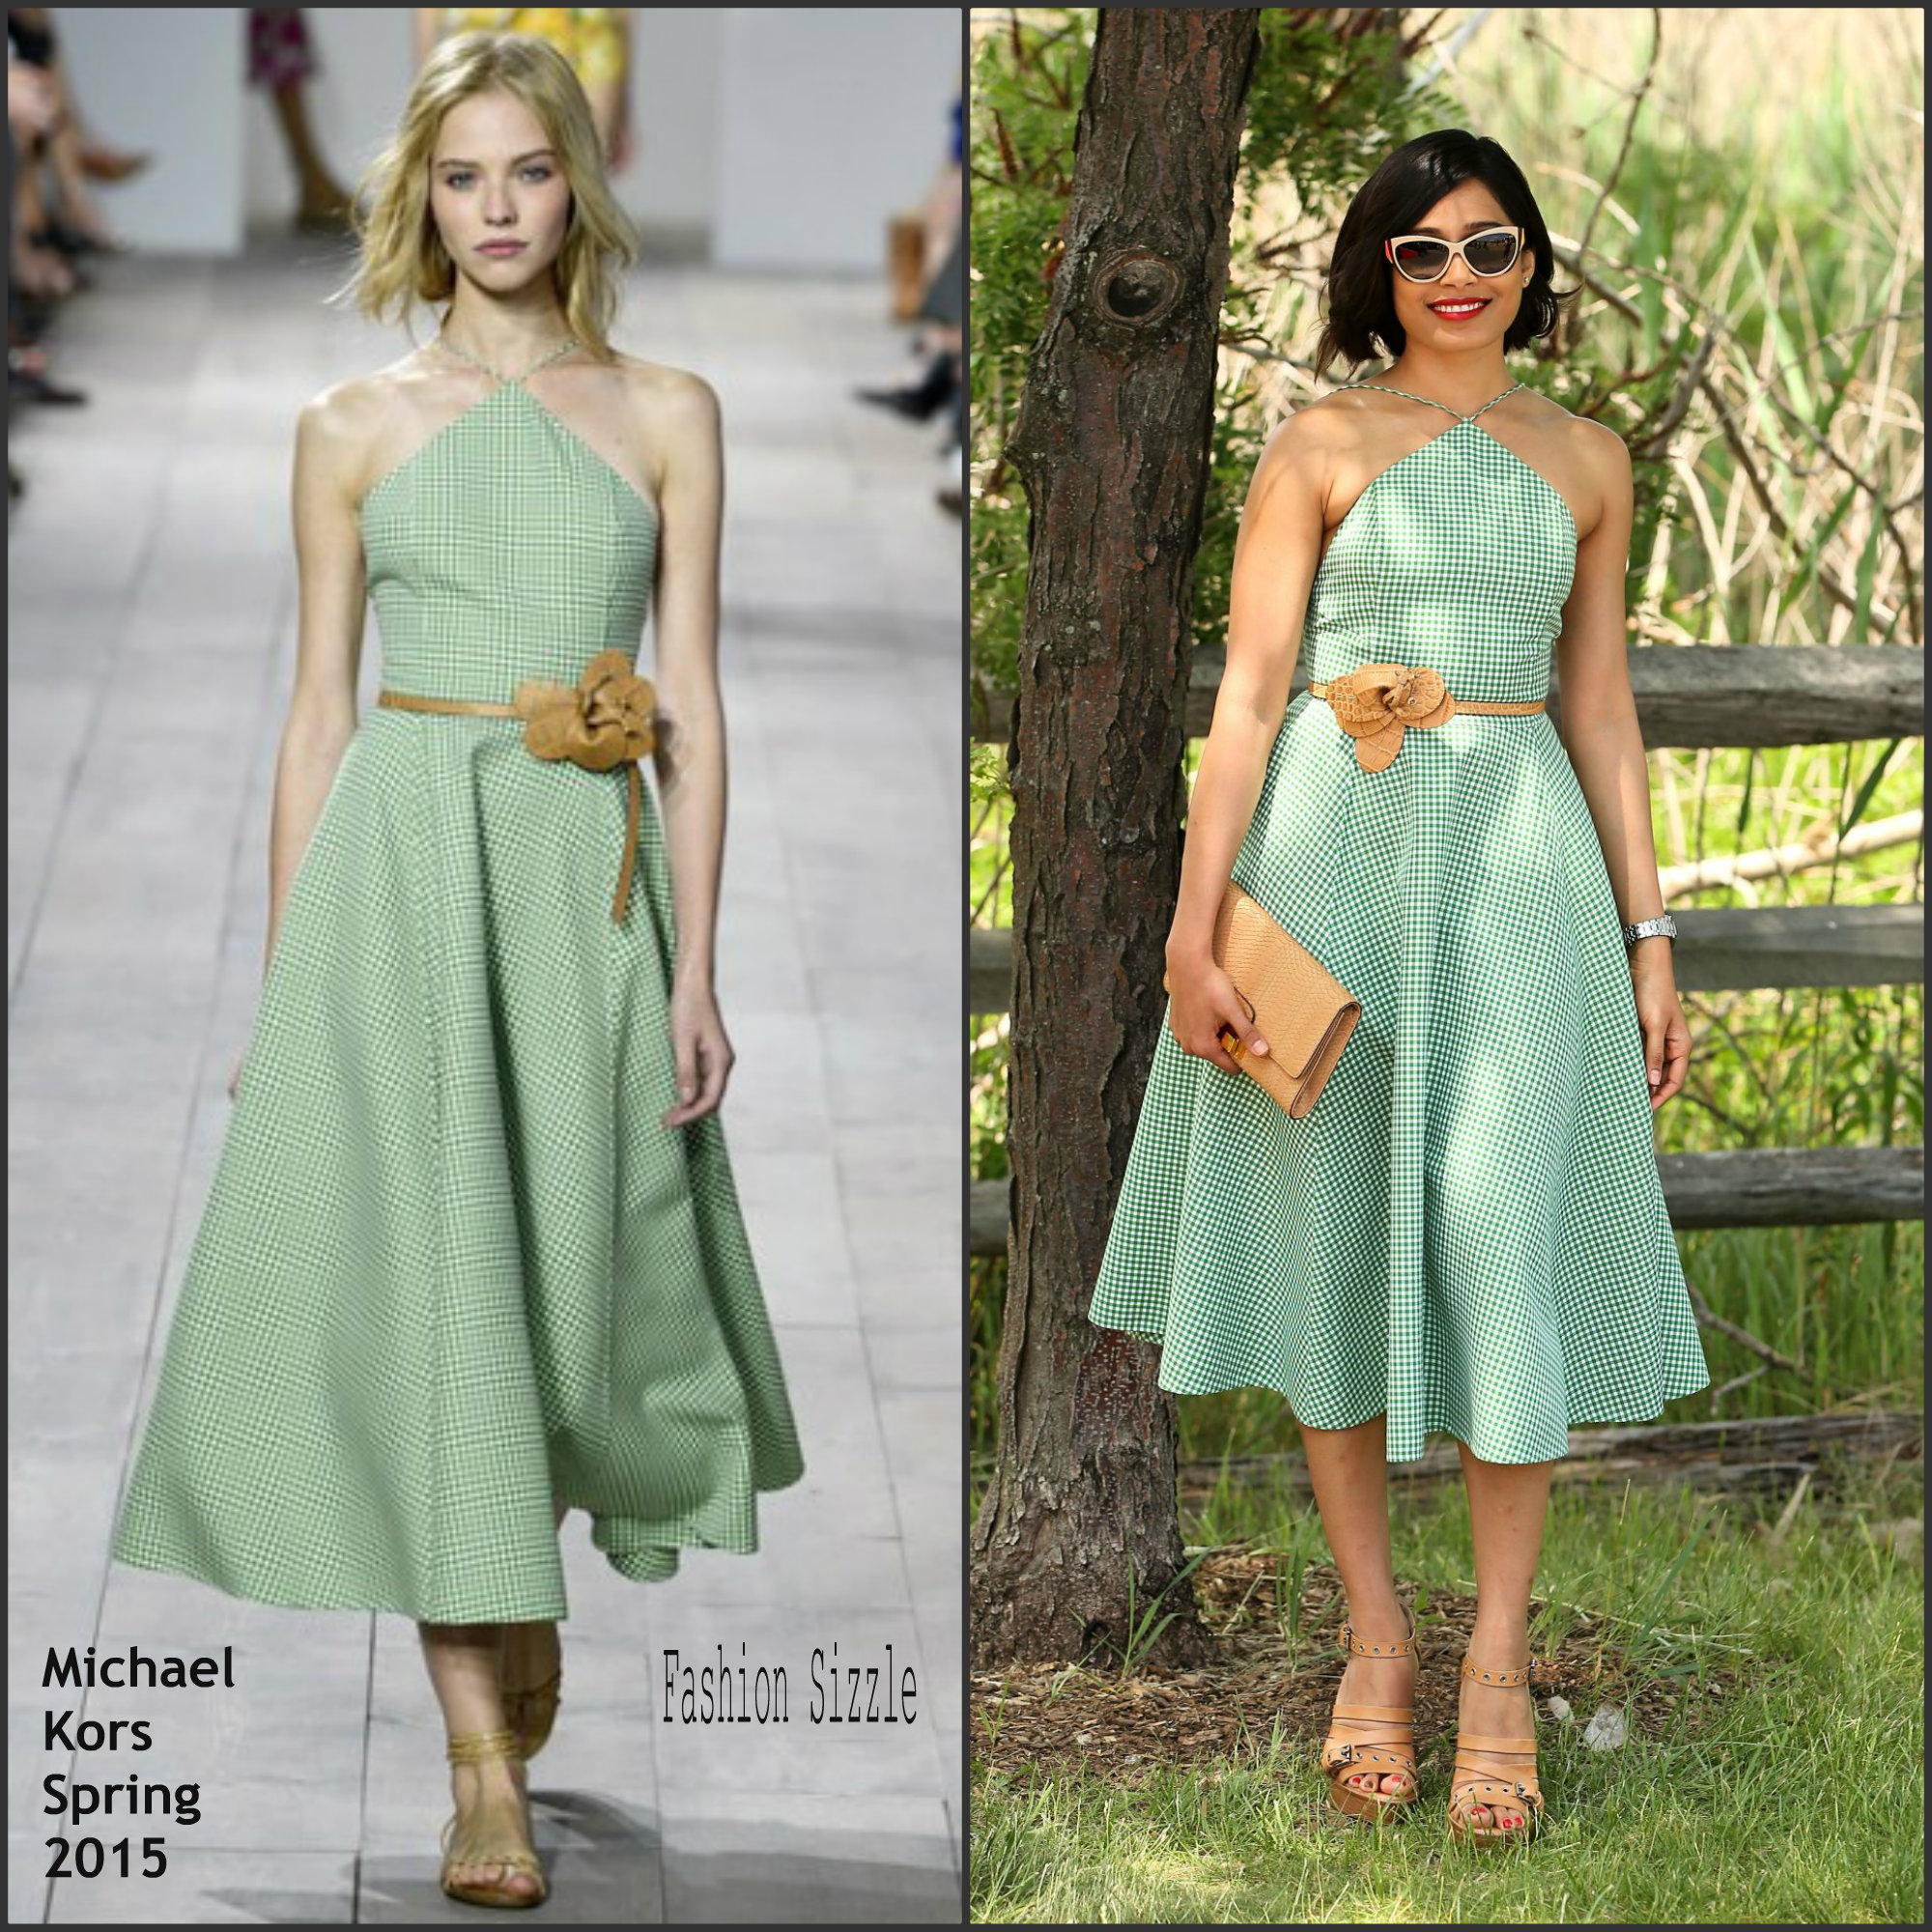 freida-pinto-in-michael-kors-8th-annual-veuve-clicquot-polo-classic